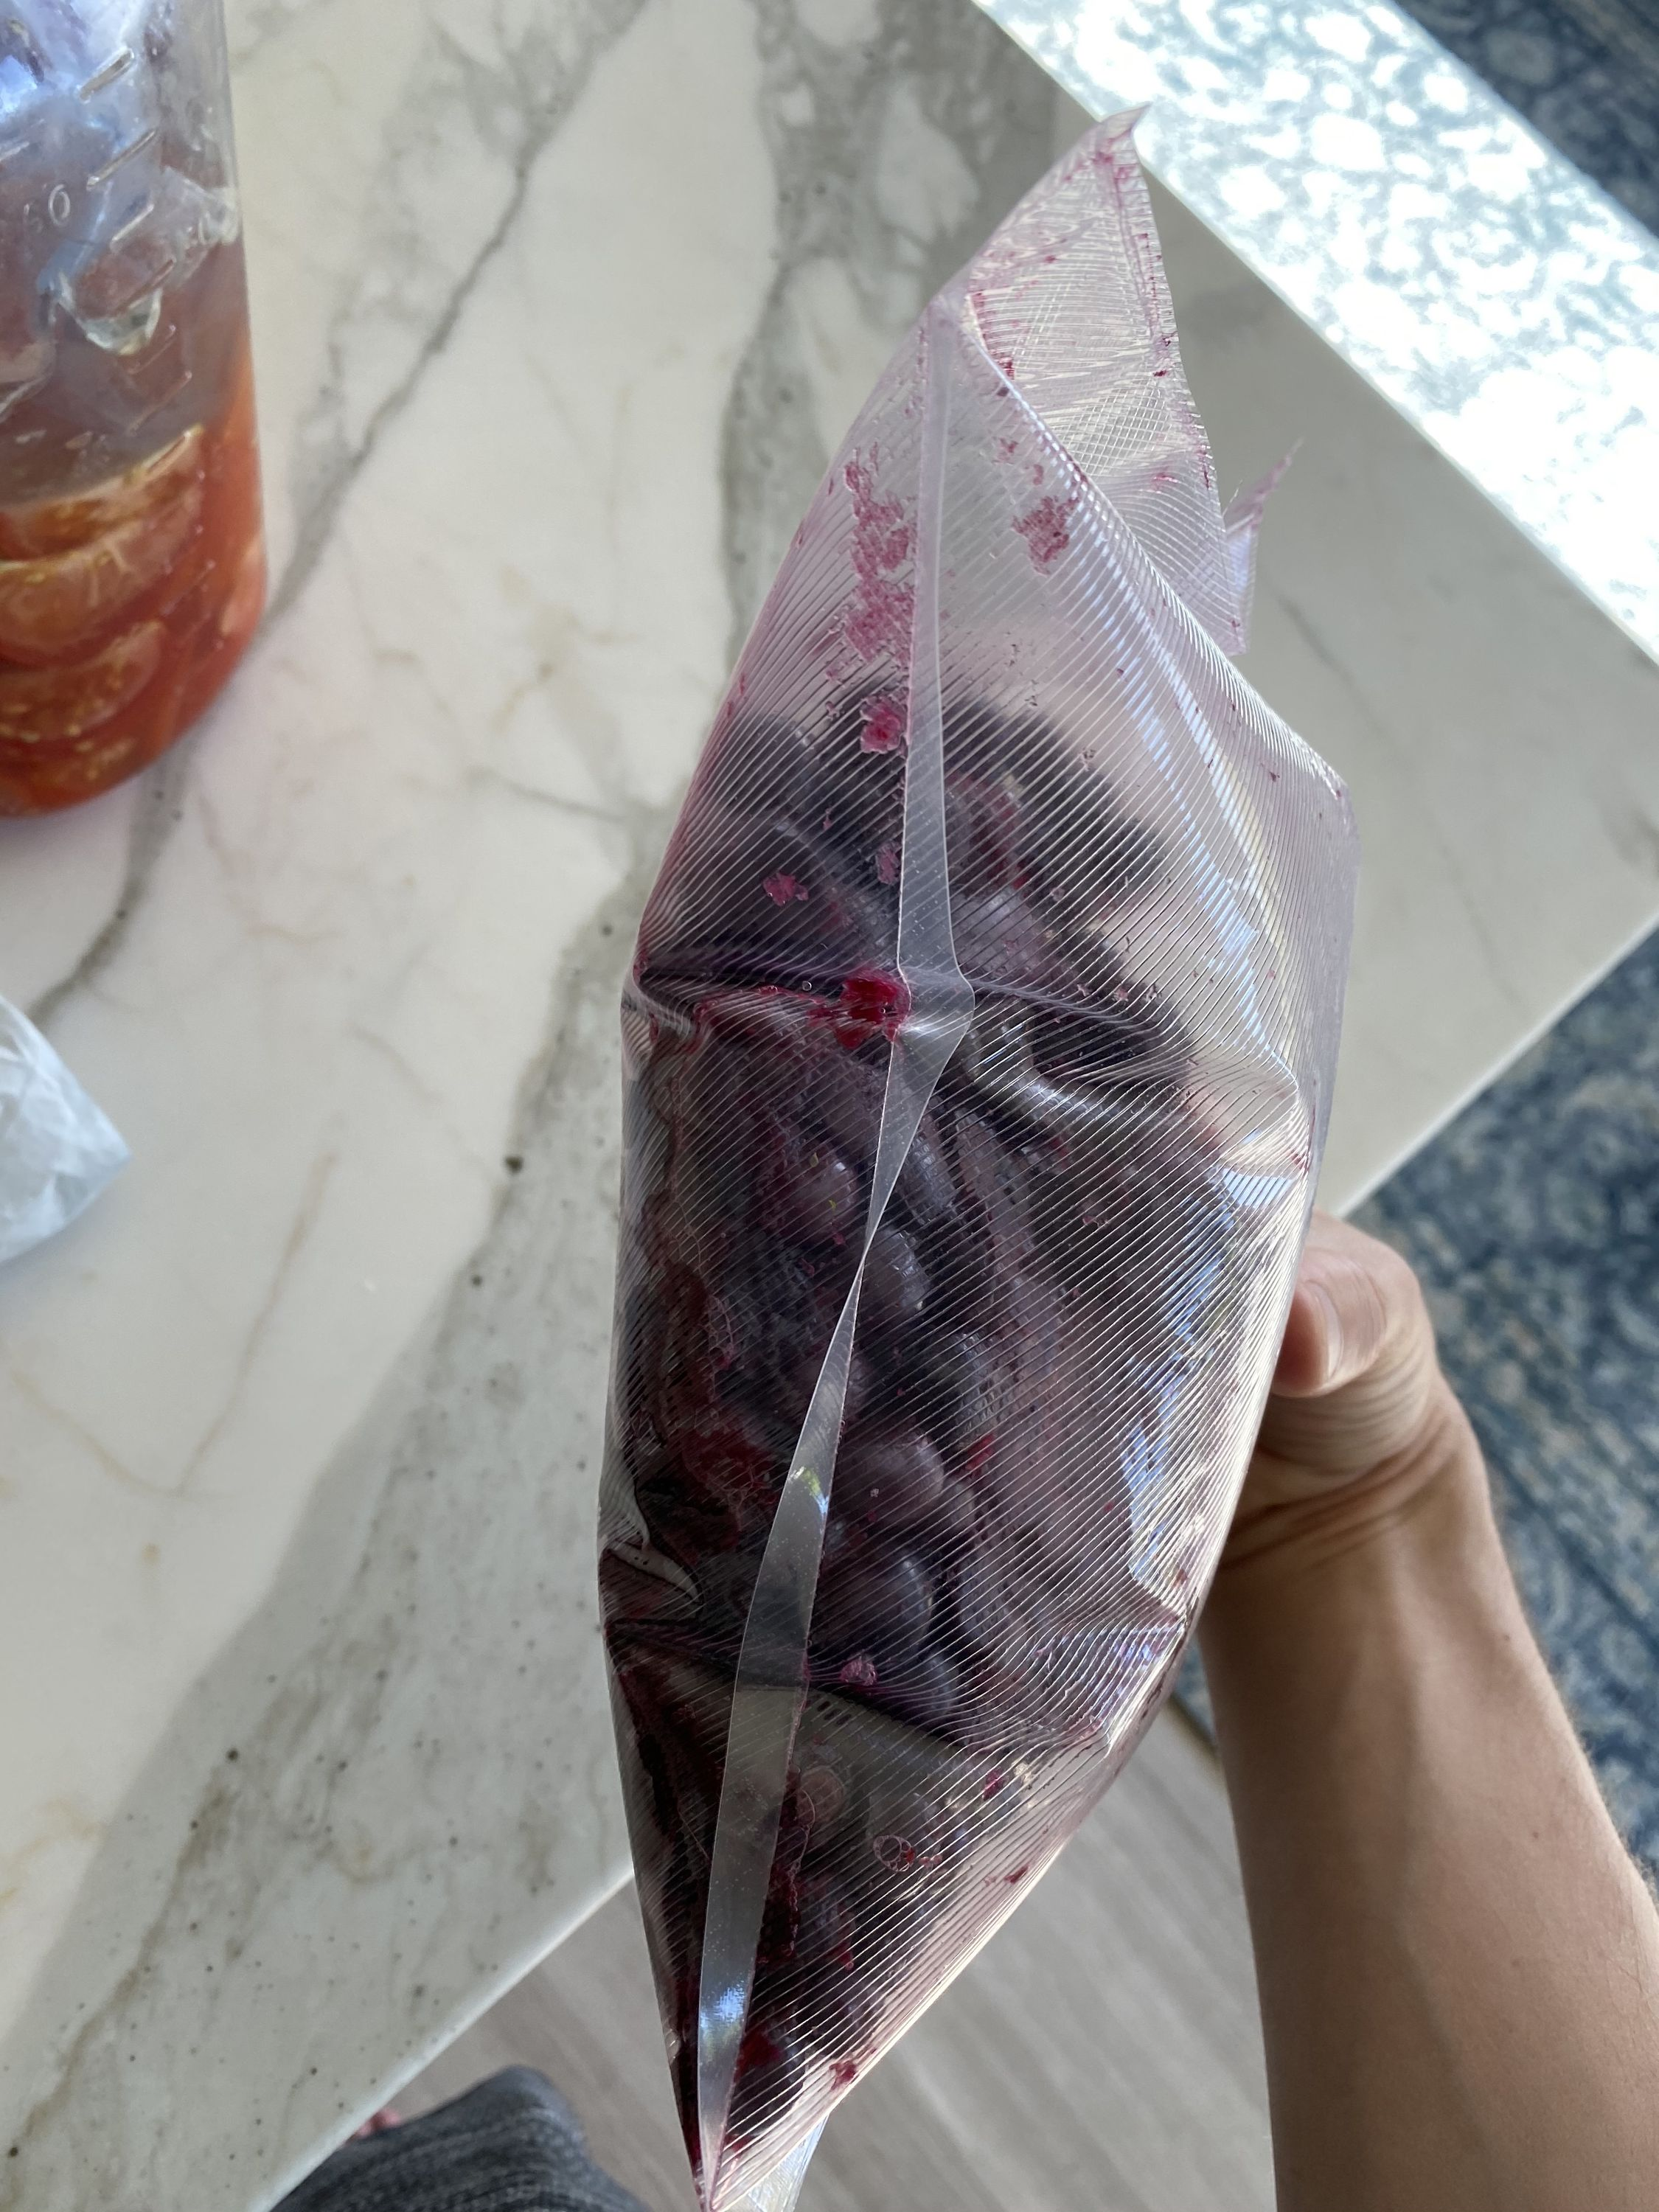 A vacuum-sealed bag of blueberries, puffy with gas